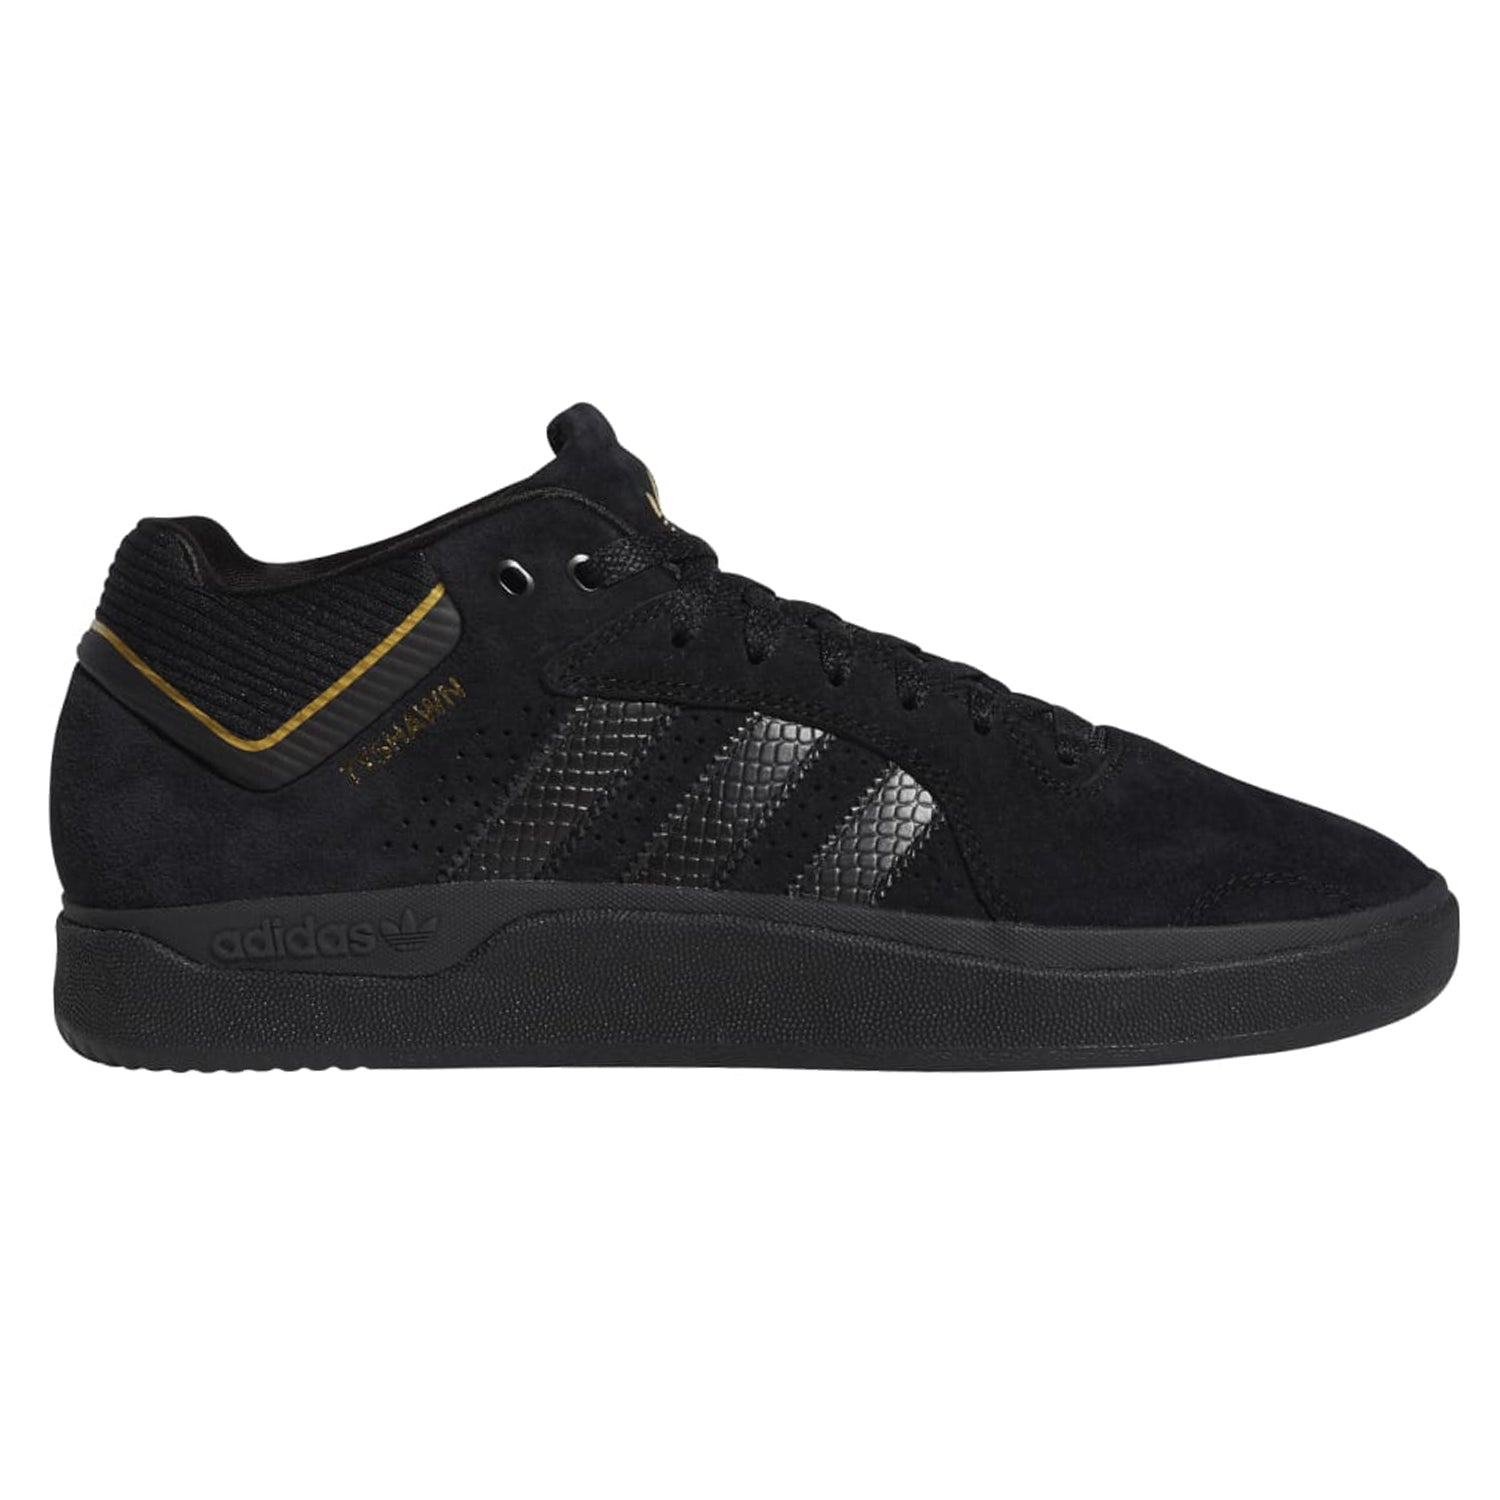 Adidas Tyshawn Pro Black/Black/Gold